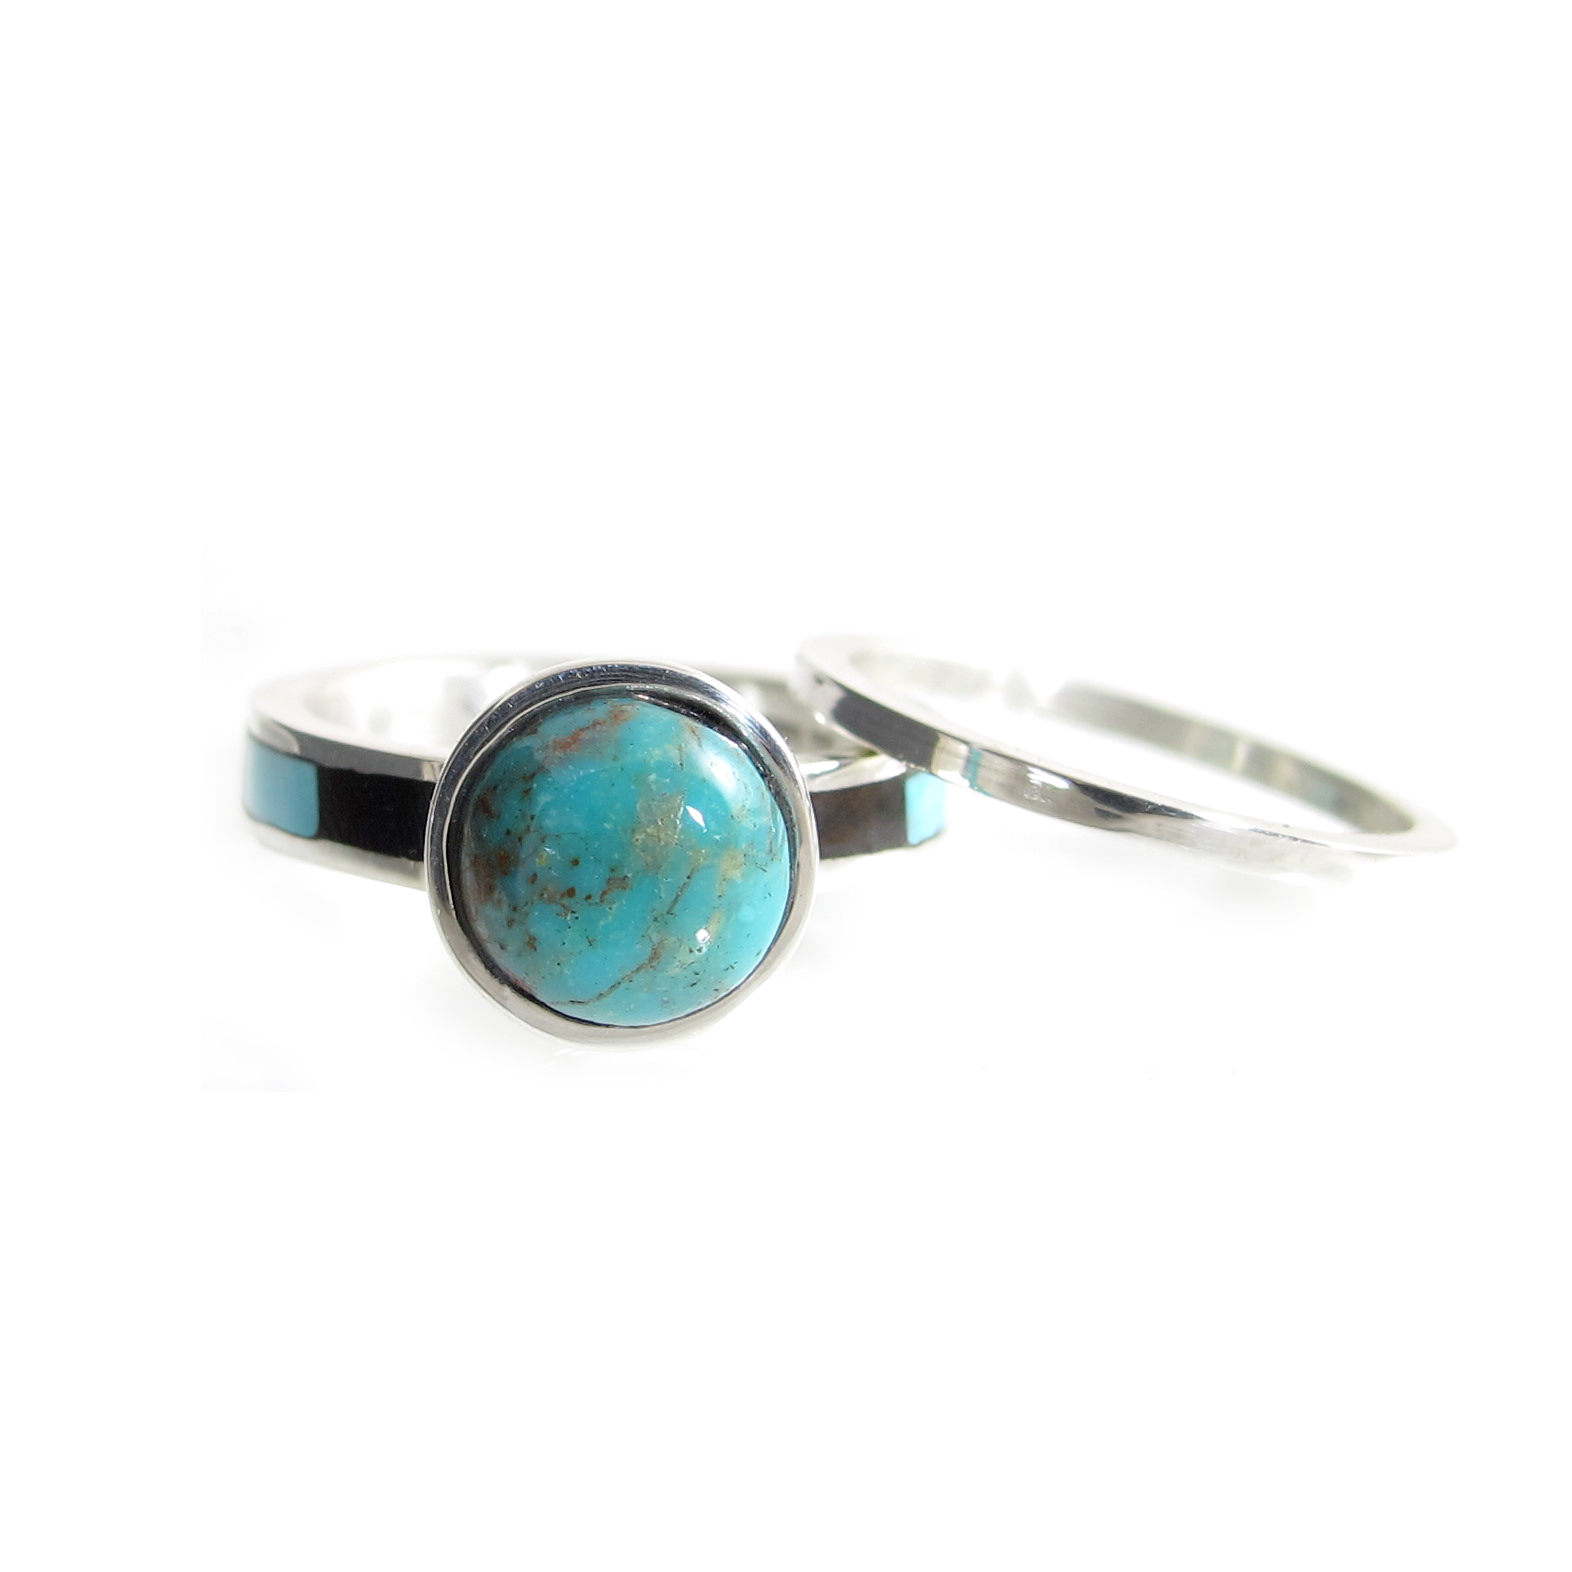 Ironwood and Turquoise Inlay Wedding Ring Set